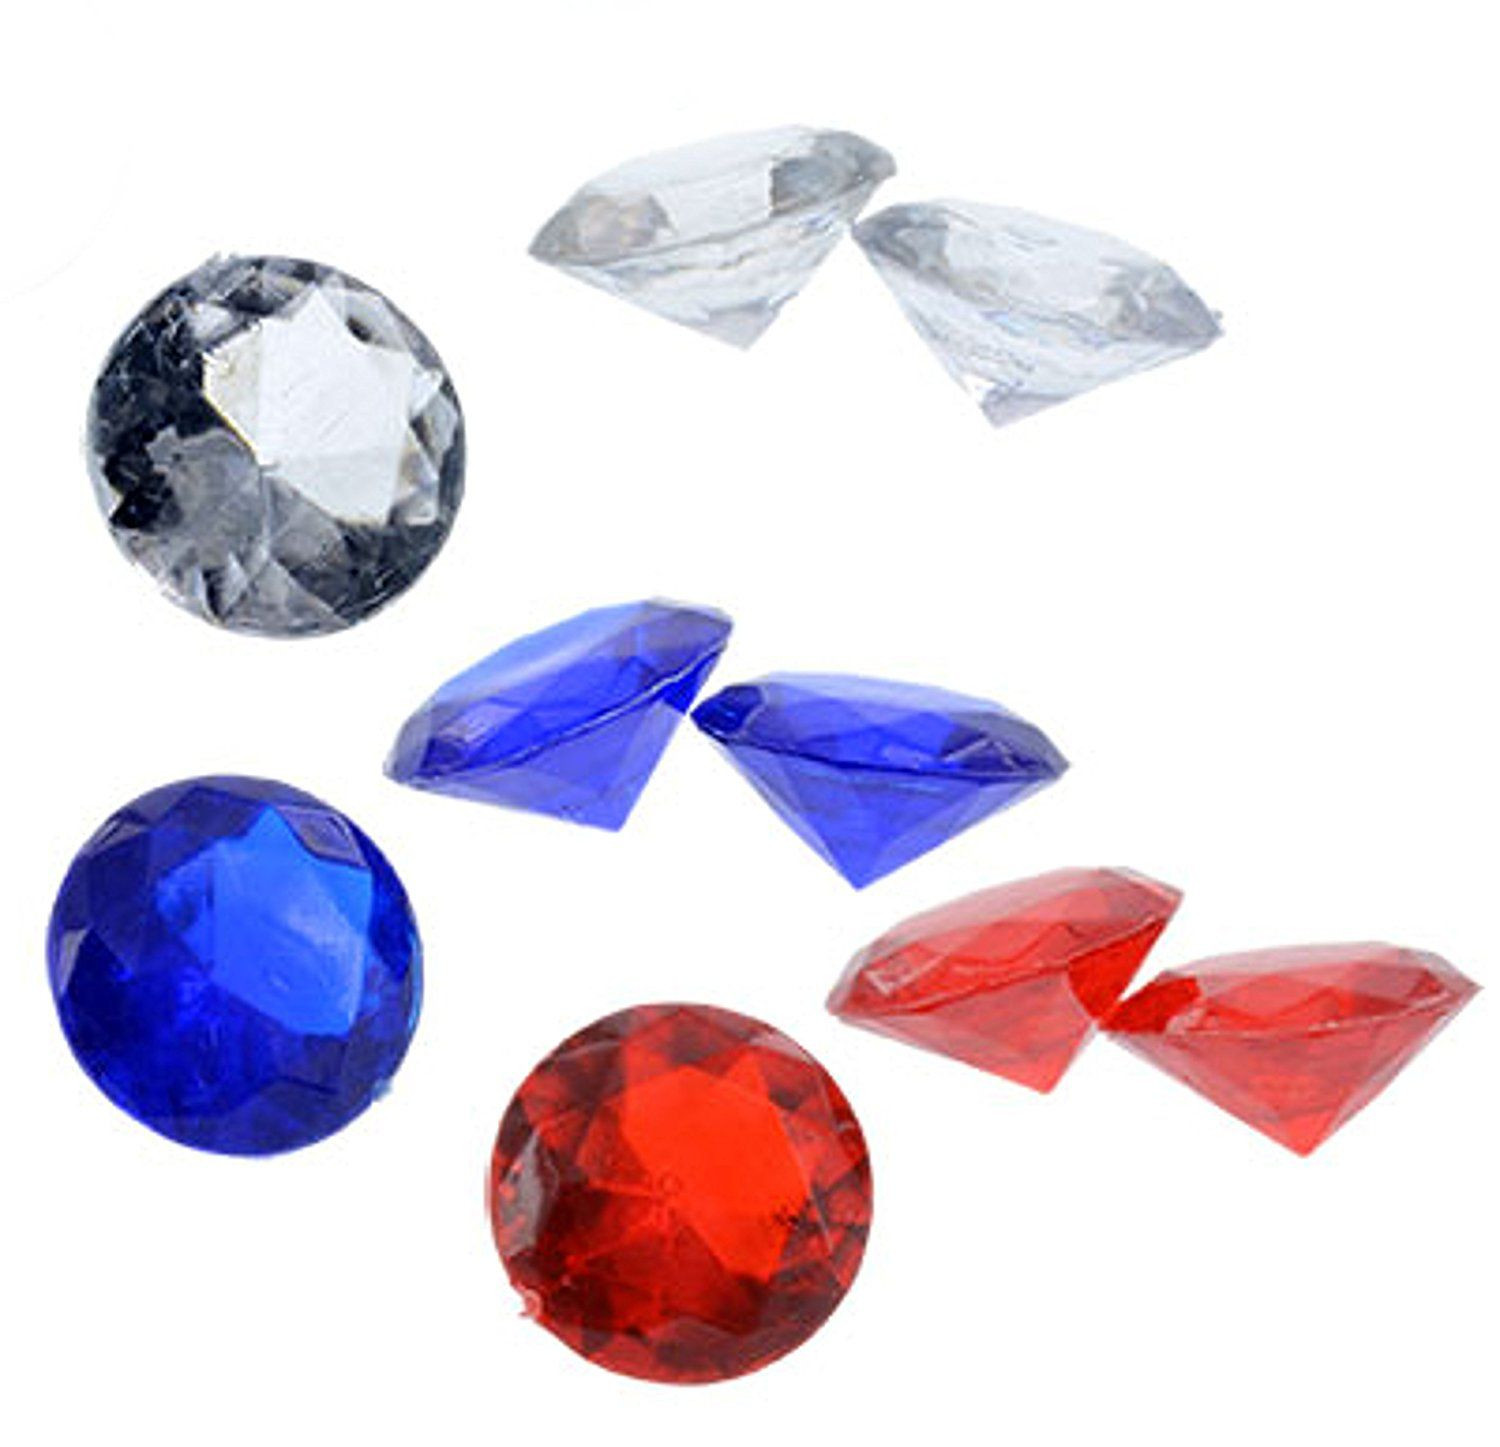 home decor vase fillers of patriotic acrylic gems for vase fillers table scatter decoration within patriotic acrylic gems for vase fillers table scatter decoration 180 count red clear blue find out more about the great product at the image link